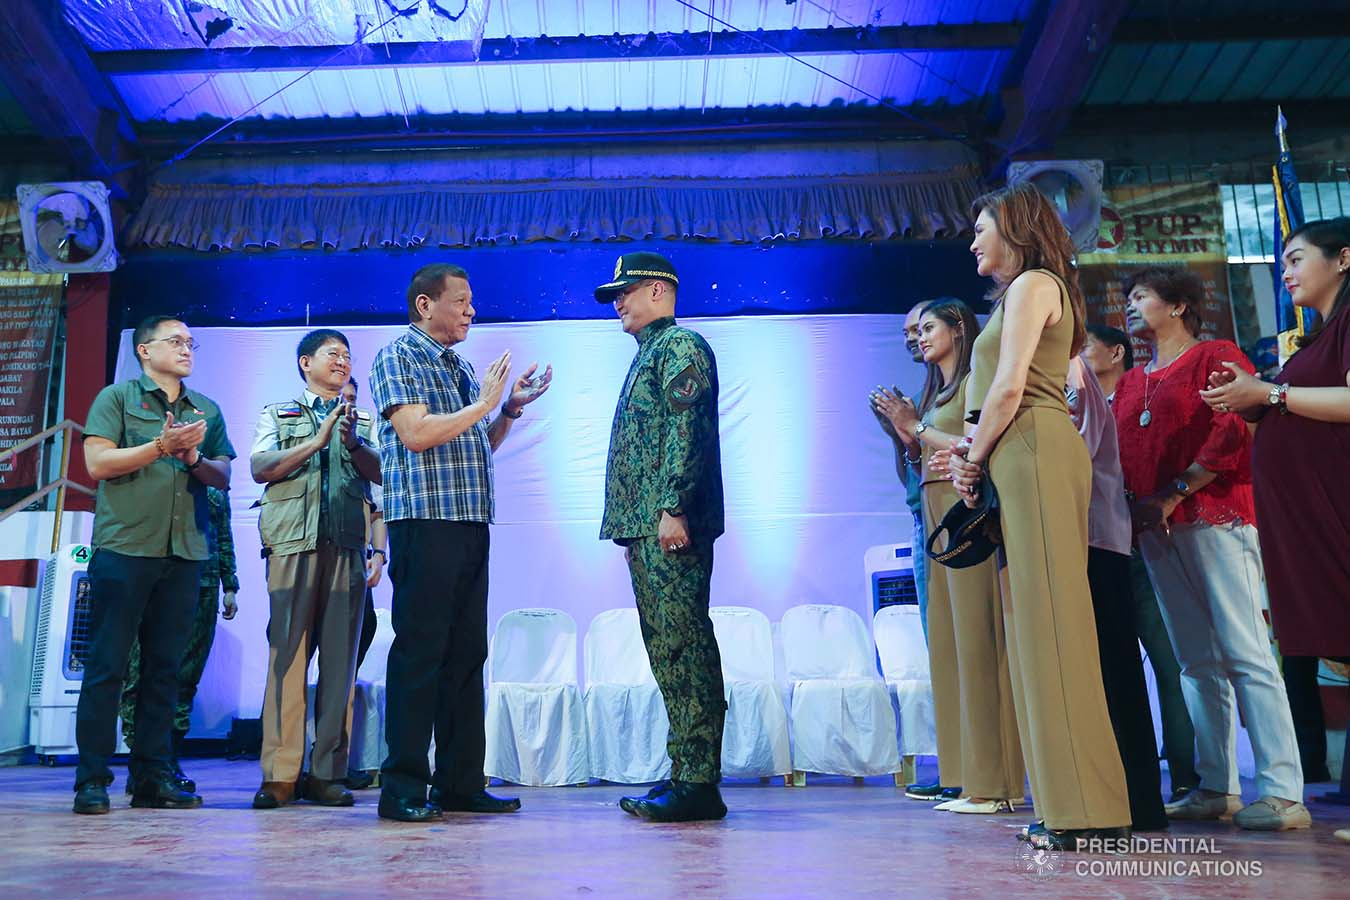 President Rodrigo Roa Duterte applauds after administering the oath to newly-appointed Philippine National Police (PNP) chief Lieutenant General Archie Gamboa during a ceremony at the Polytechnic University of the Philippines-Sto. Tomas Campus in Sto. Tomas City, Batangas on January 20, 2020. VALERIE ESCALERA/PRESIDENTIAL PHOTO